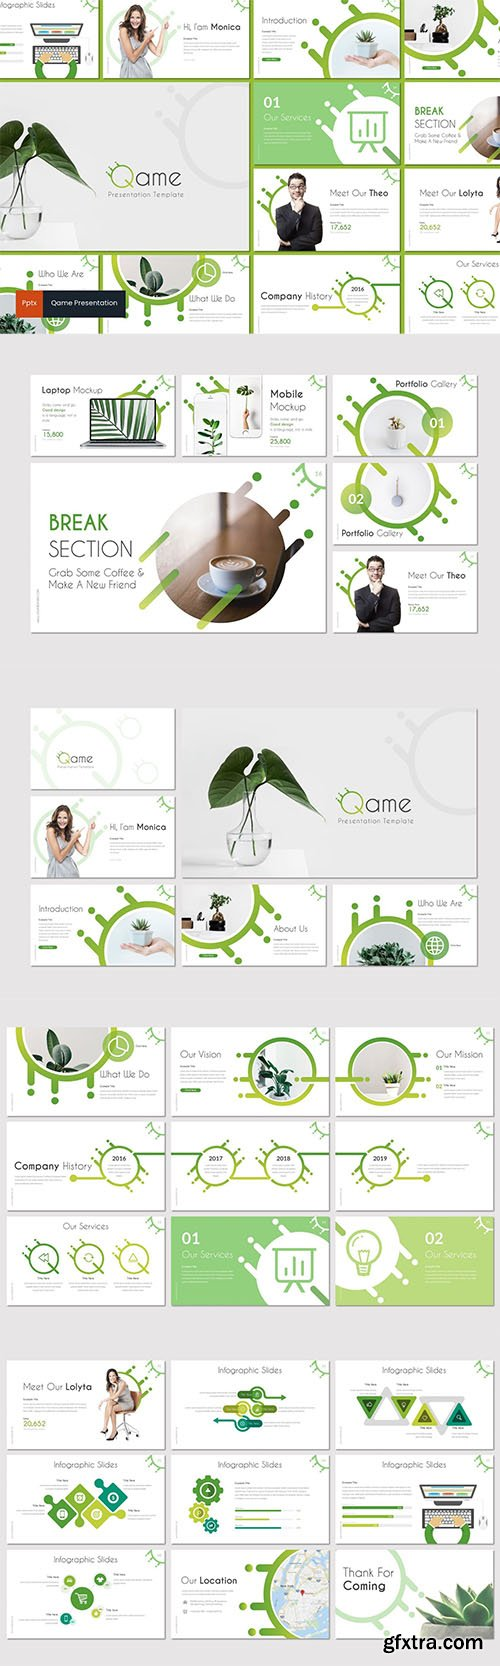 Qame - Business Powerpoint, Keynote and Google Slides Templates